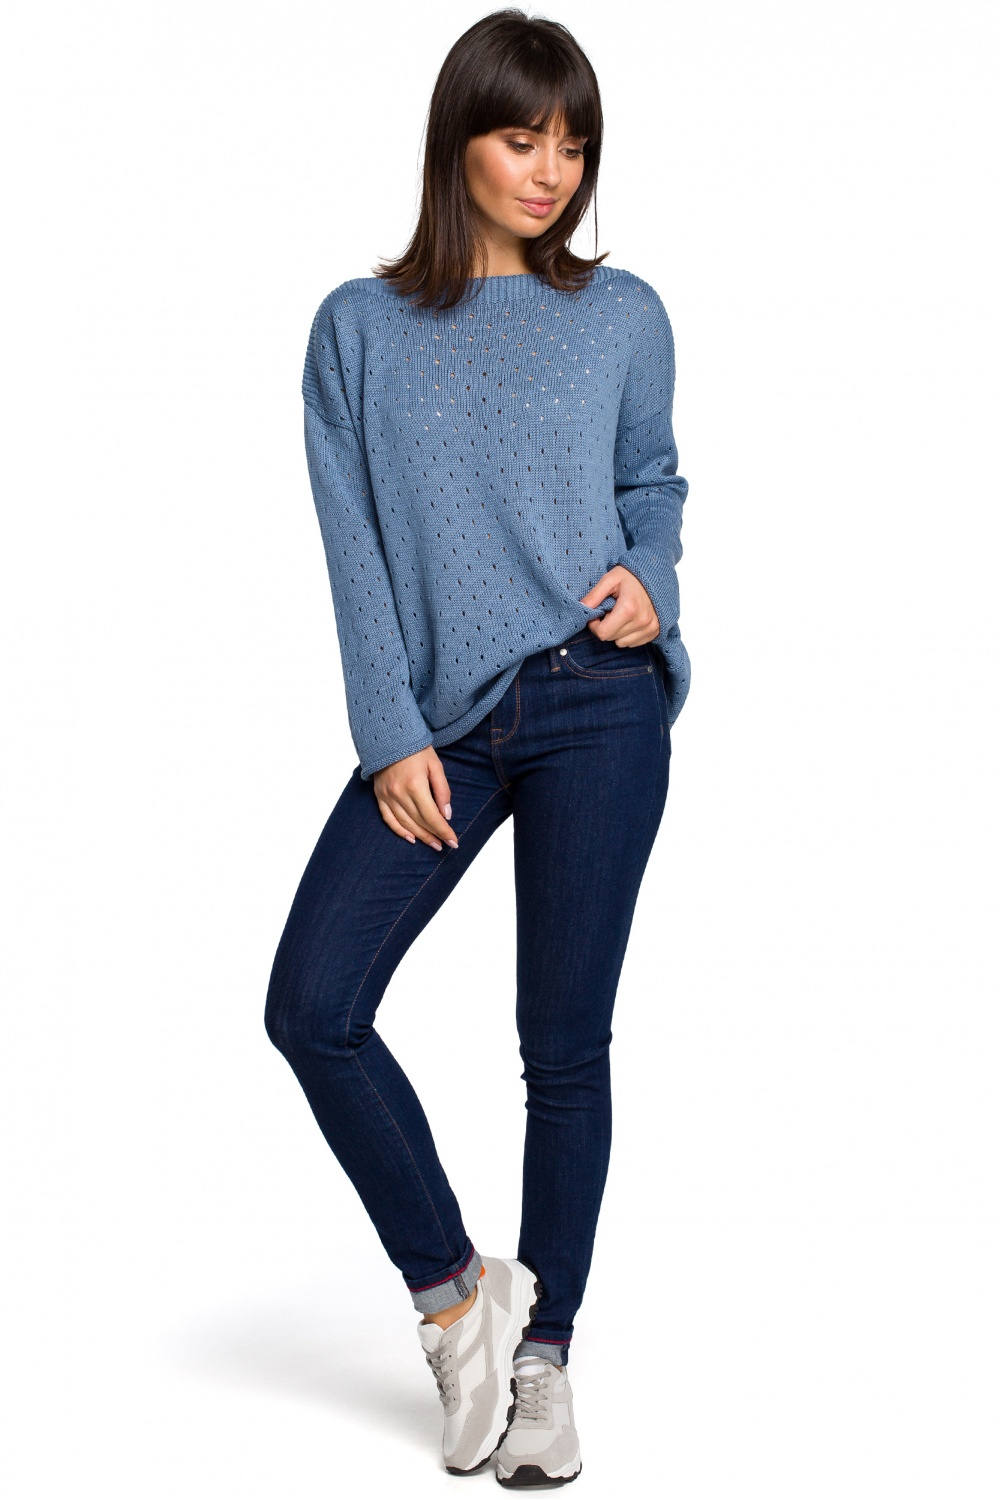 Pulover model 129162 BE Knit